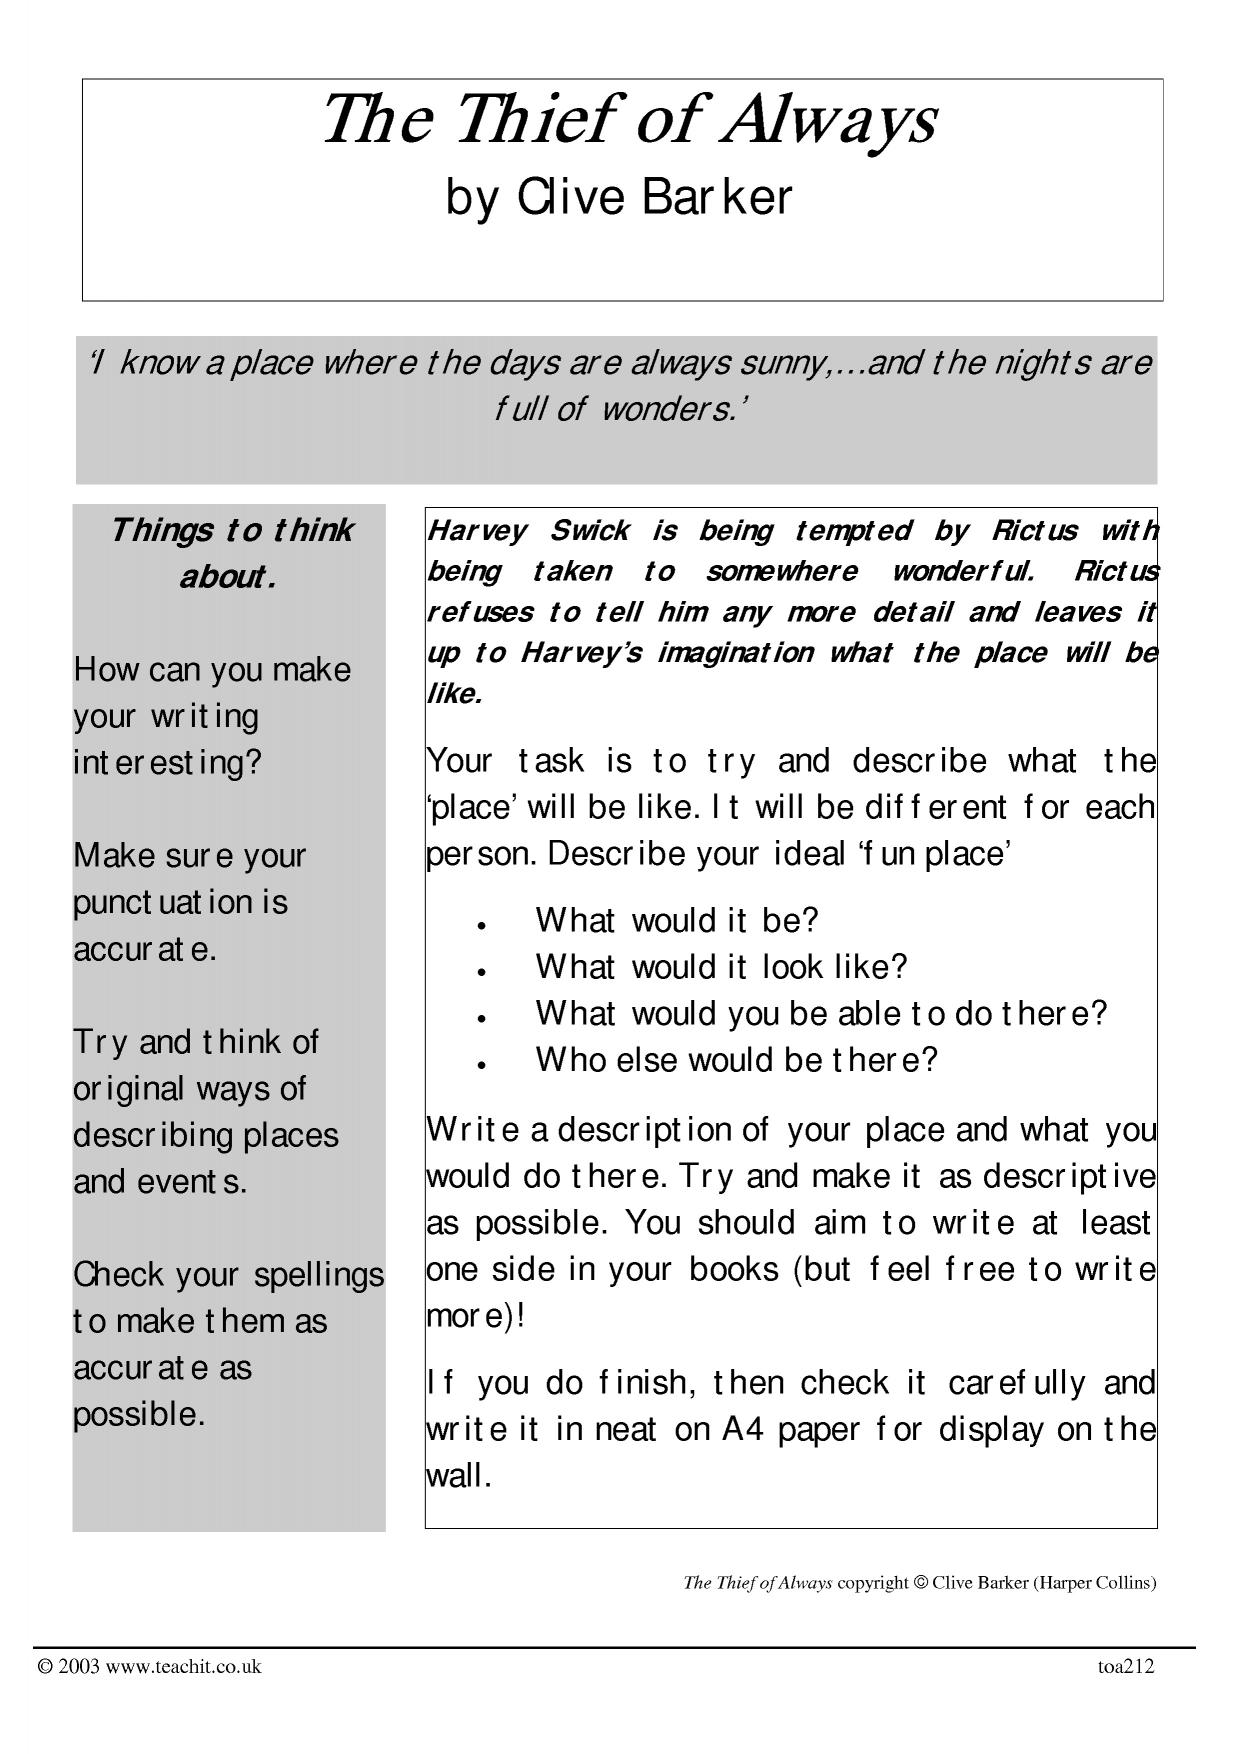 how to write a descriptive essay about a place how do you write a  imaginative writing ks writing key stage resources 0 preview ks3 writing descriptive